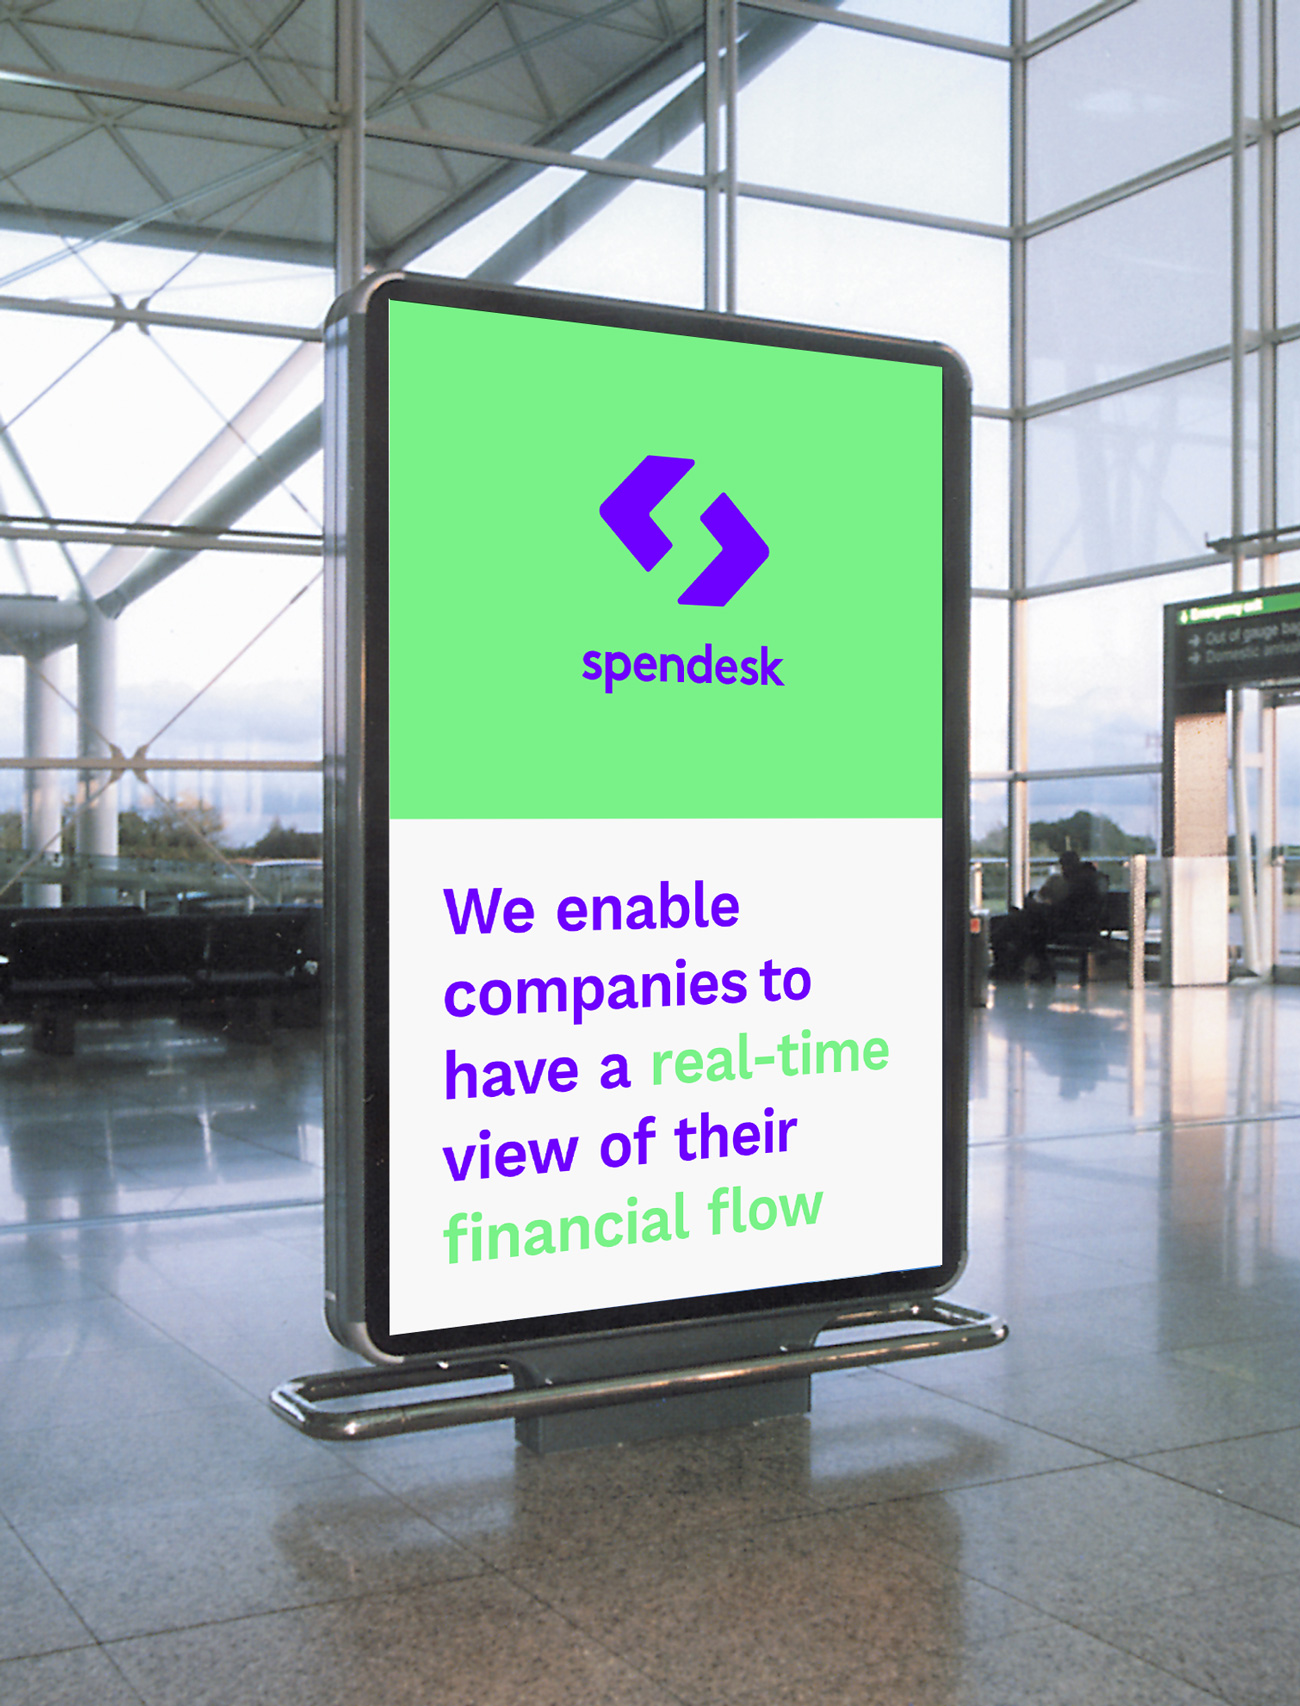 club-sandwich-spendesk-poster-airport.jpg